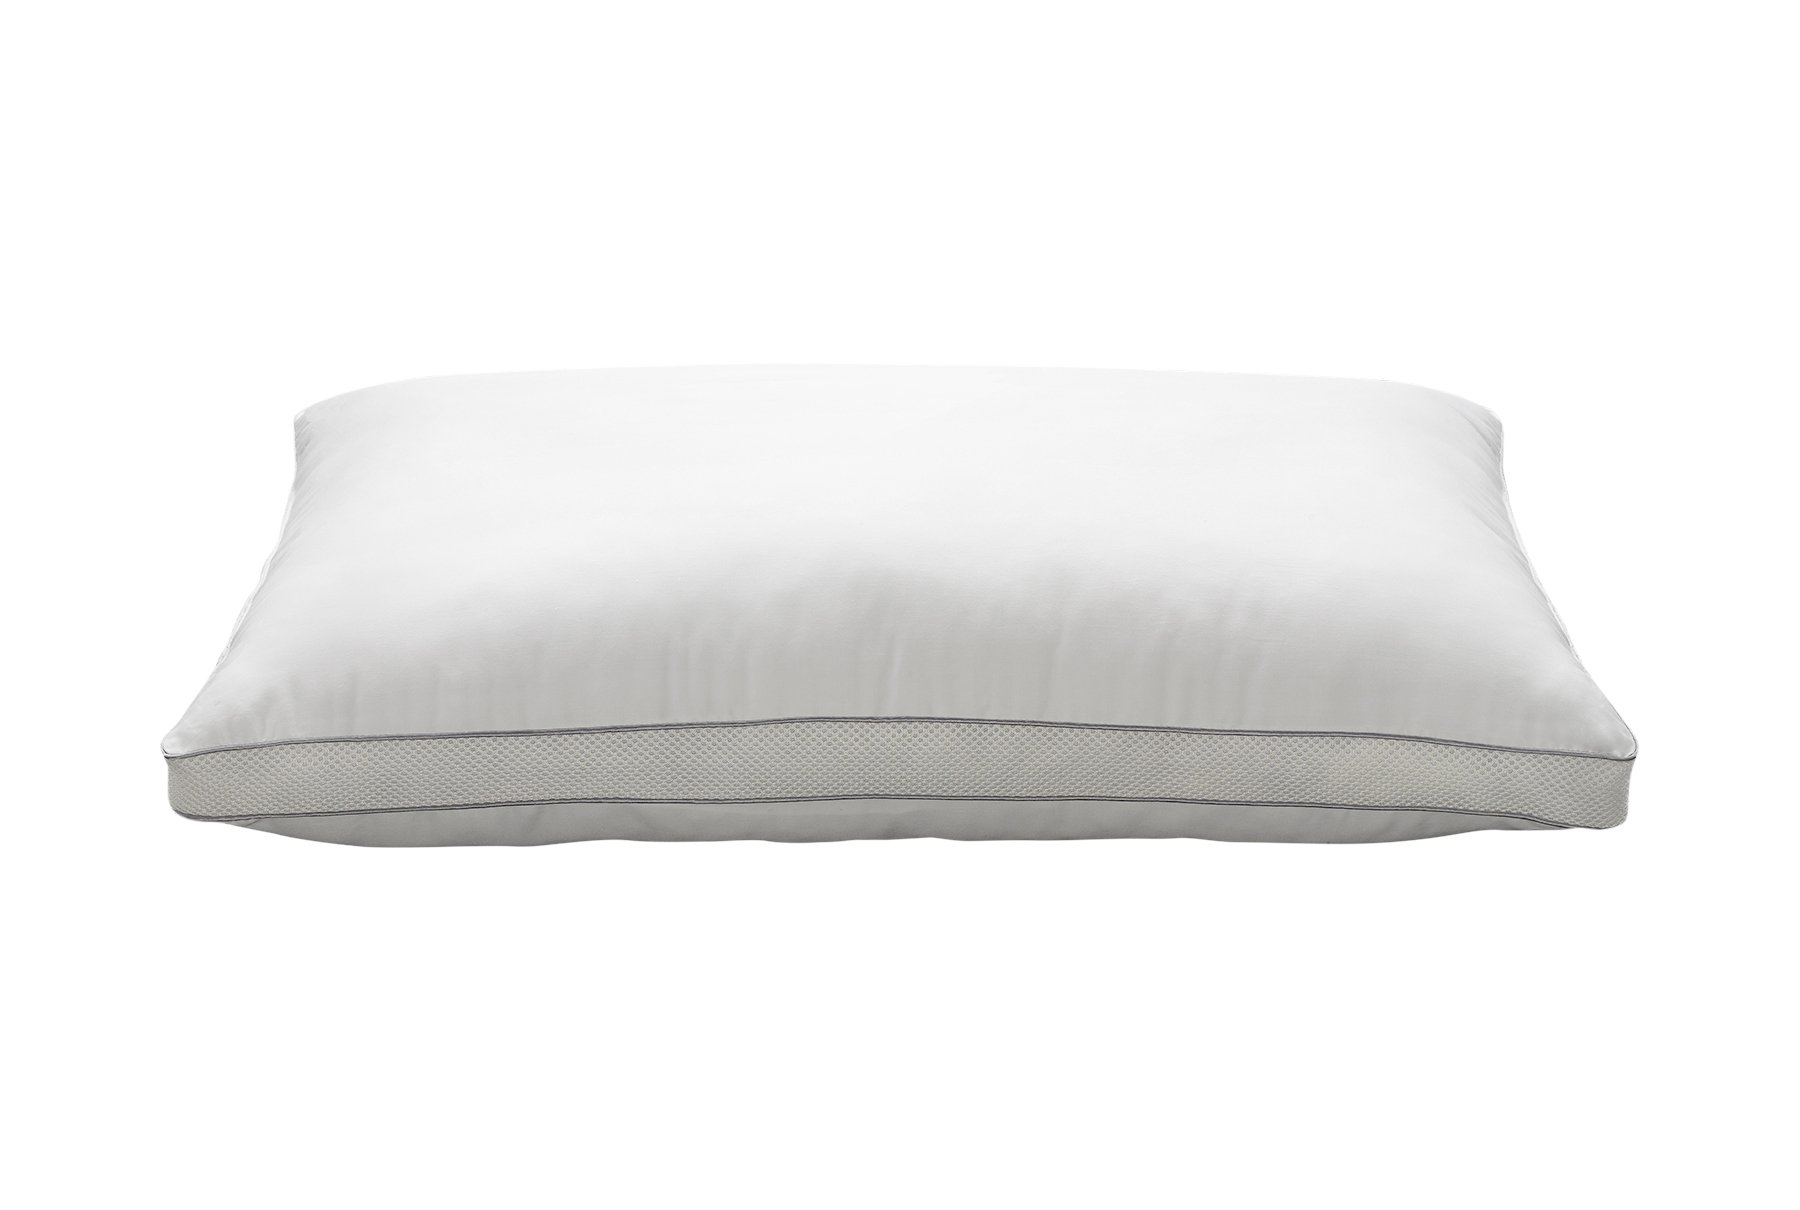 Ella Jayne Home Luxury Mesh Gusset Style MEDIUM SOFT Gel Fiber Filled Bed Pillow with 100% Cotton Shell, Standard Size Pillow, Ideal for Stomach Sleepers, Single